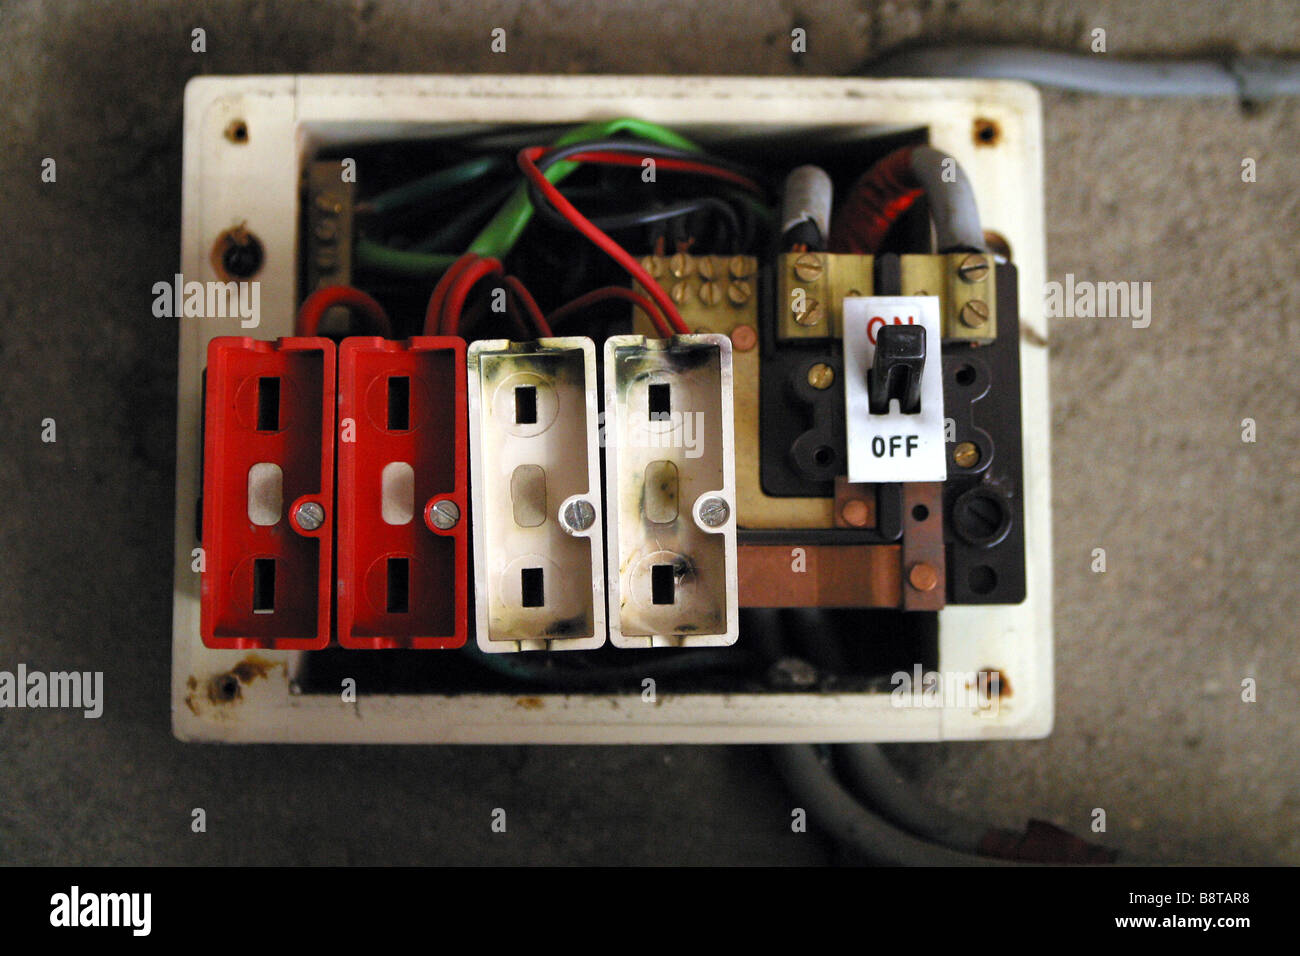 Fuse Box Electrical | Wiring Diagram Clicking Noise From Fuse Box on beeping noise, clapping noise, rattling noise, ringing noise, buzzing noise, ticking noise,